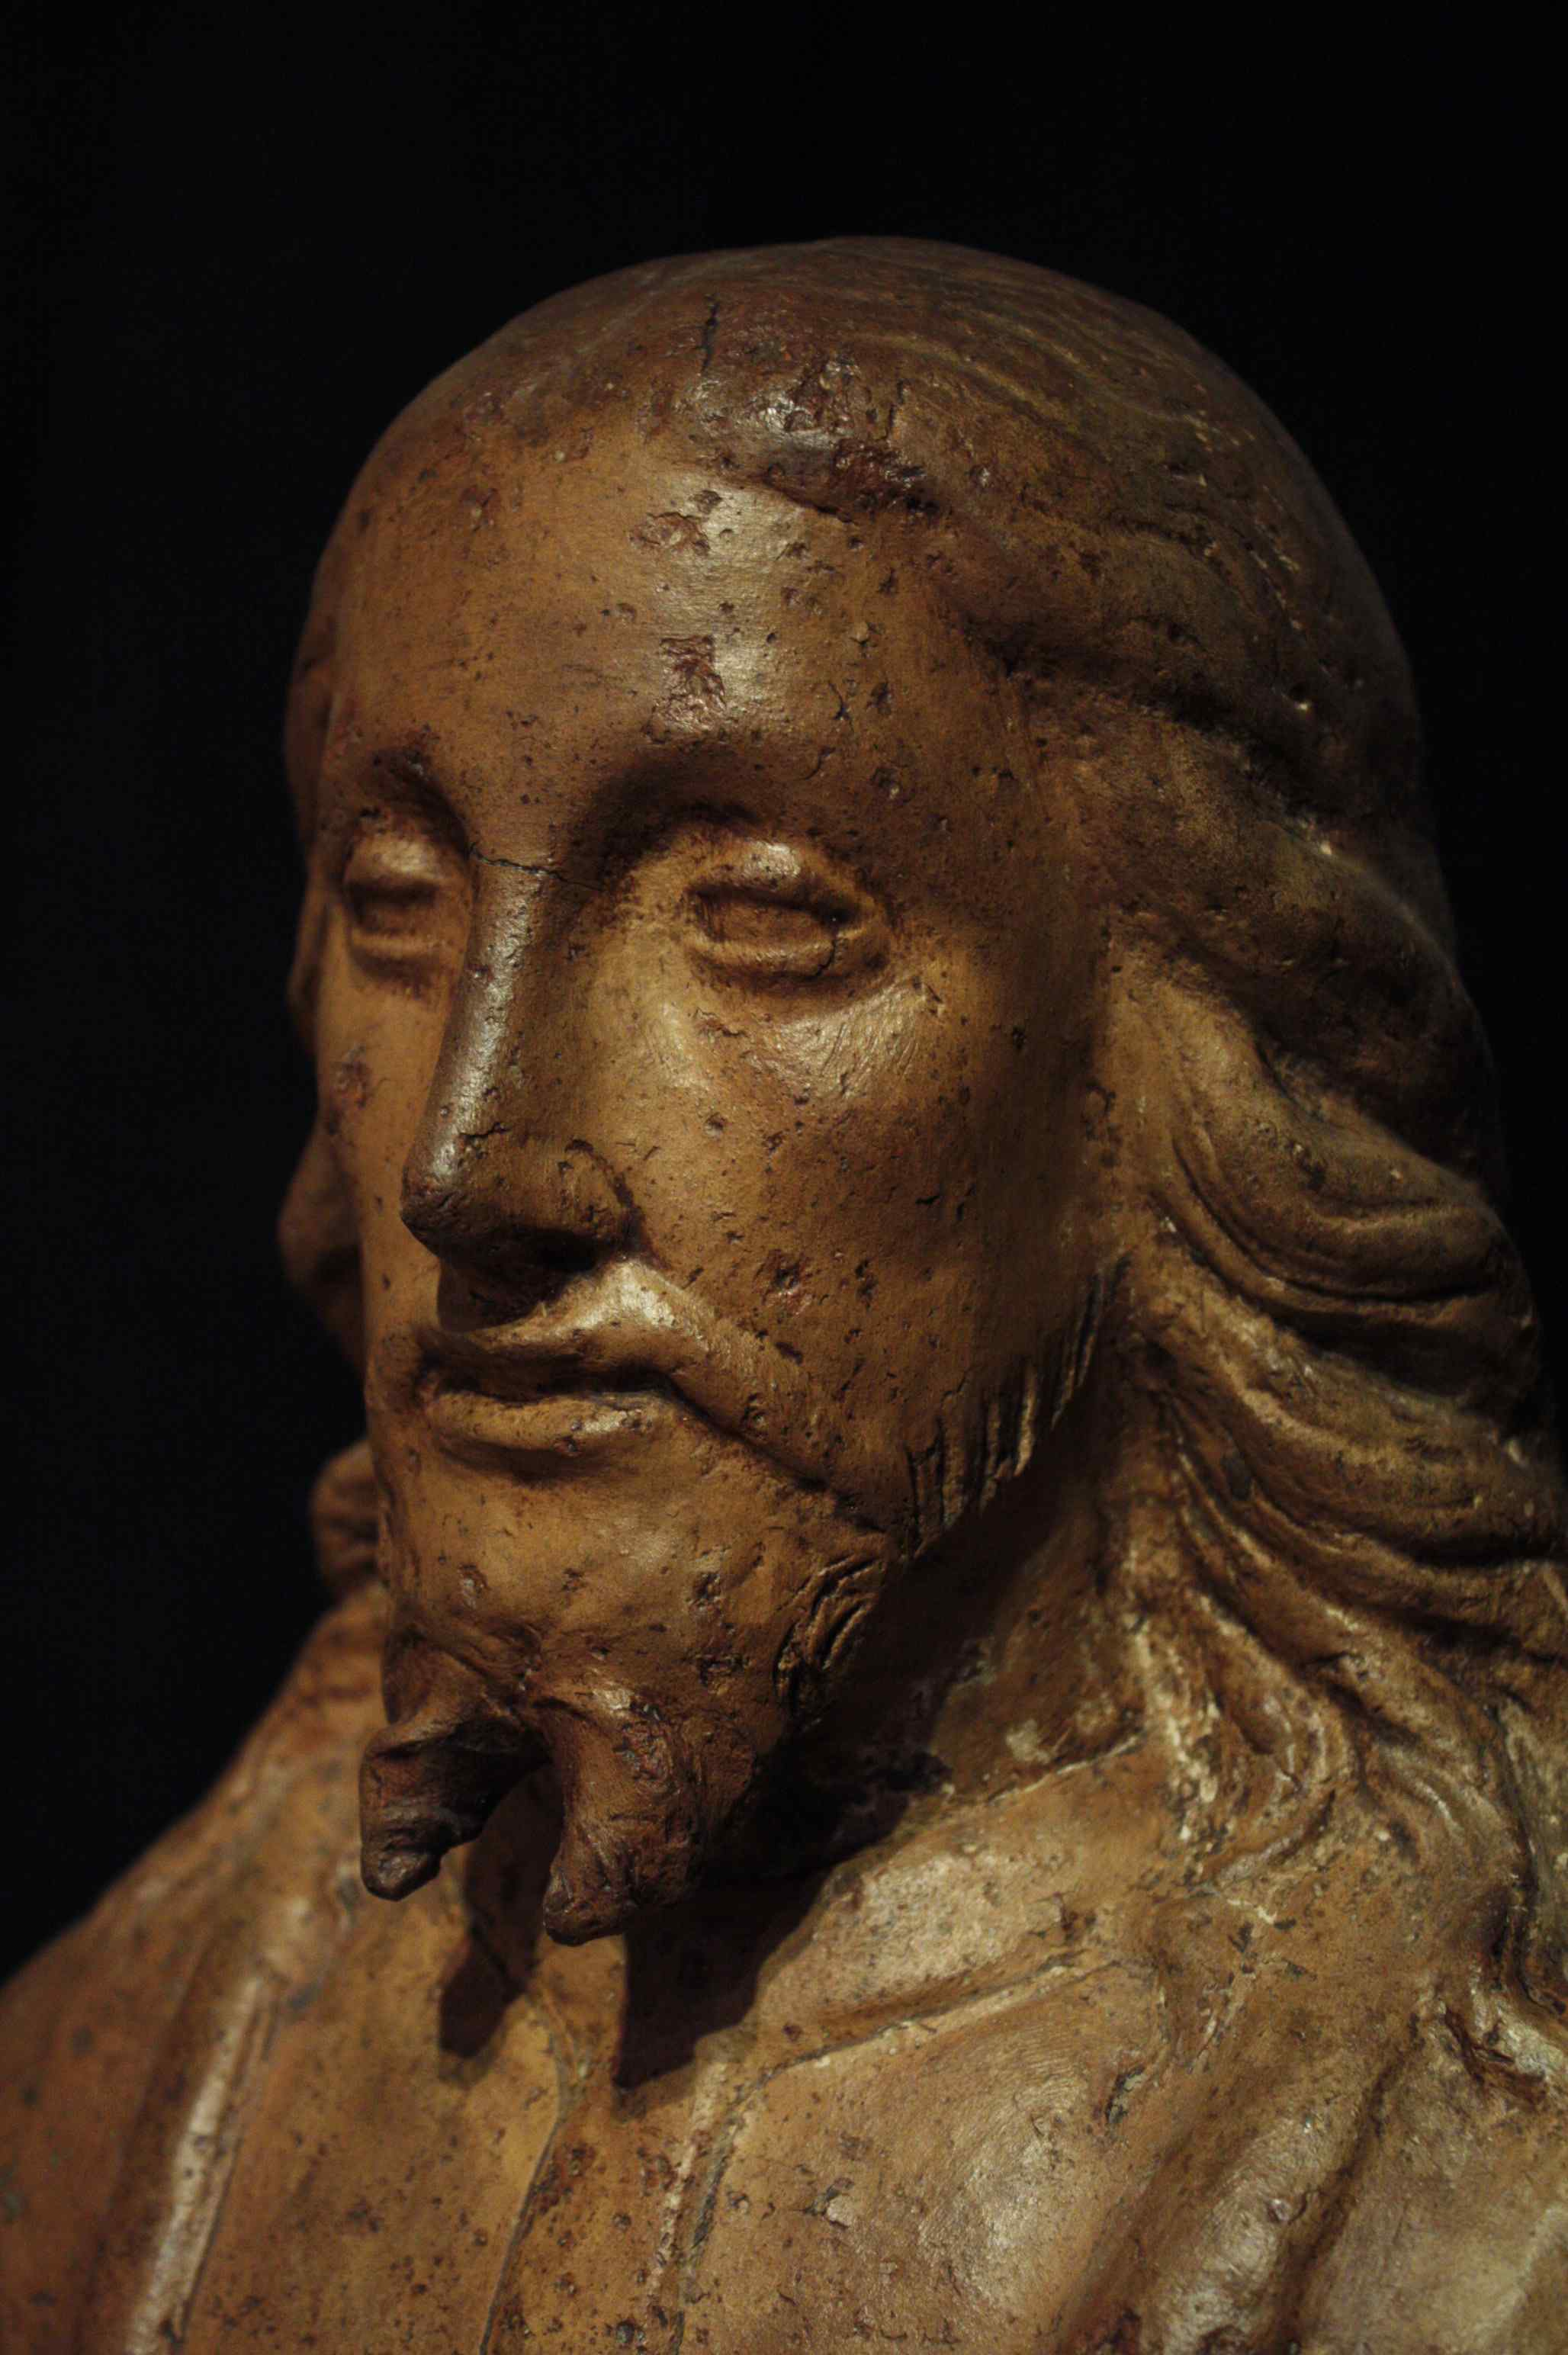 Busto di Crsto in terracotta